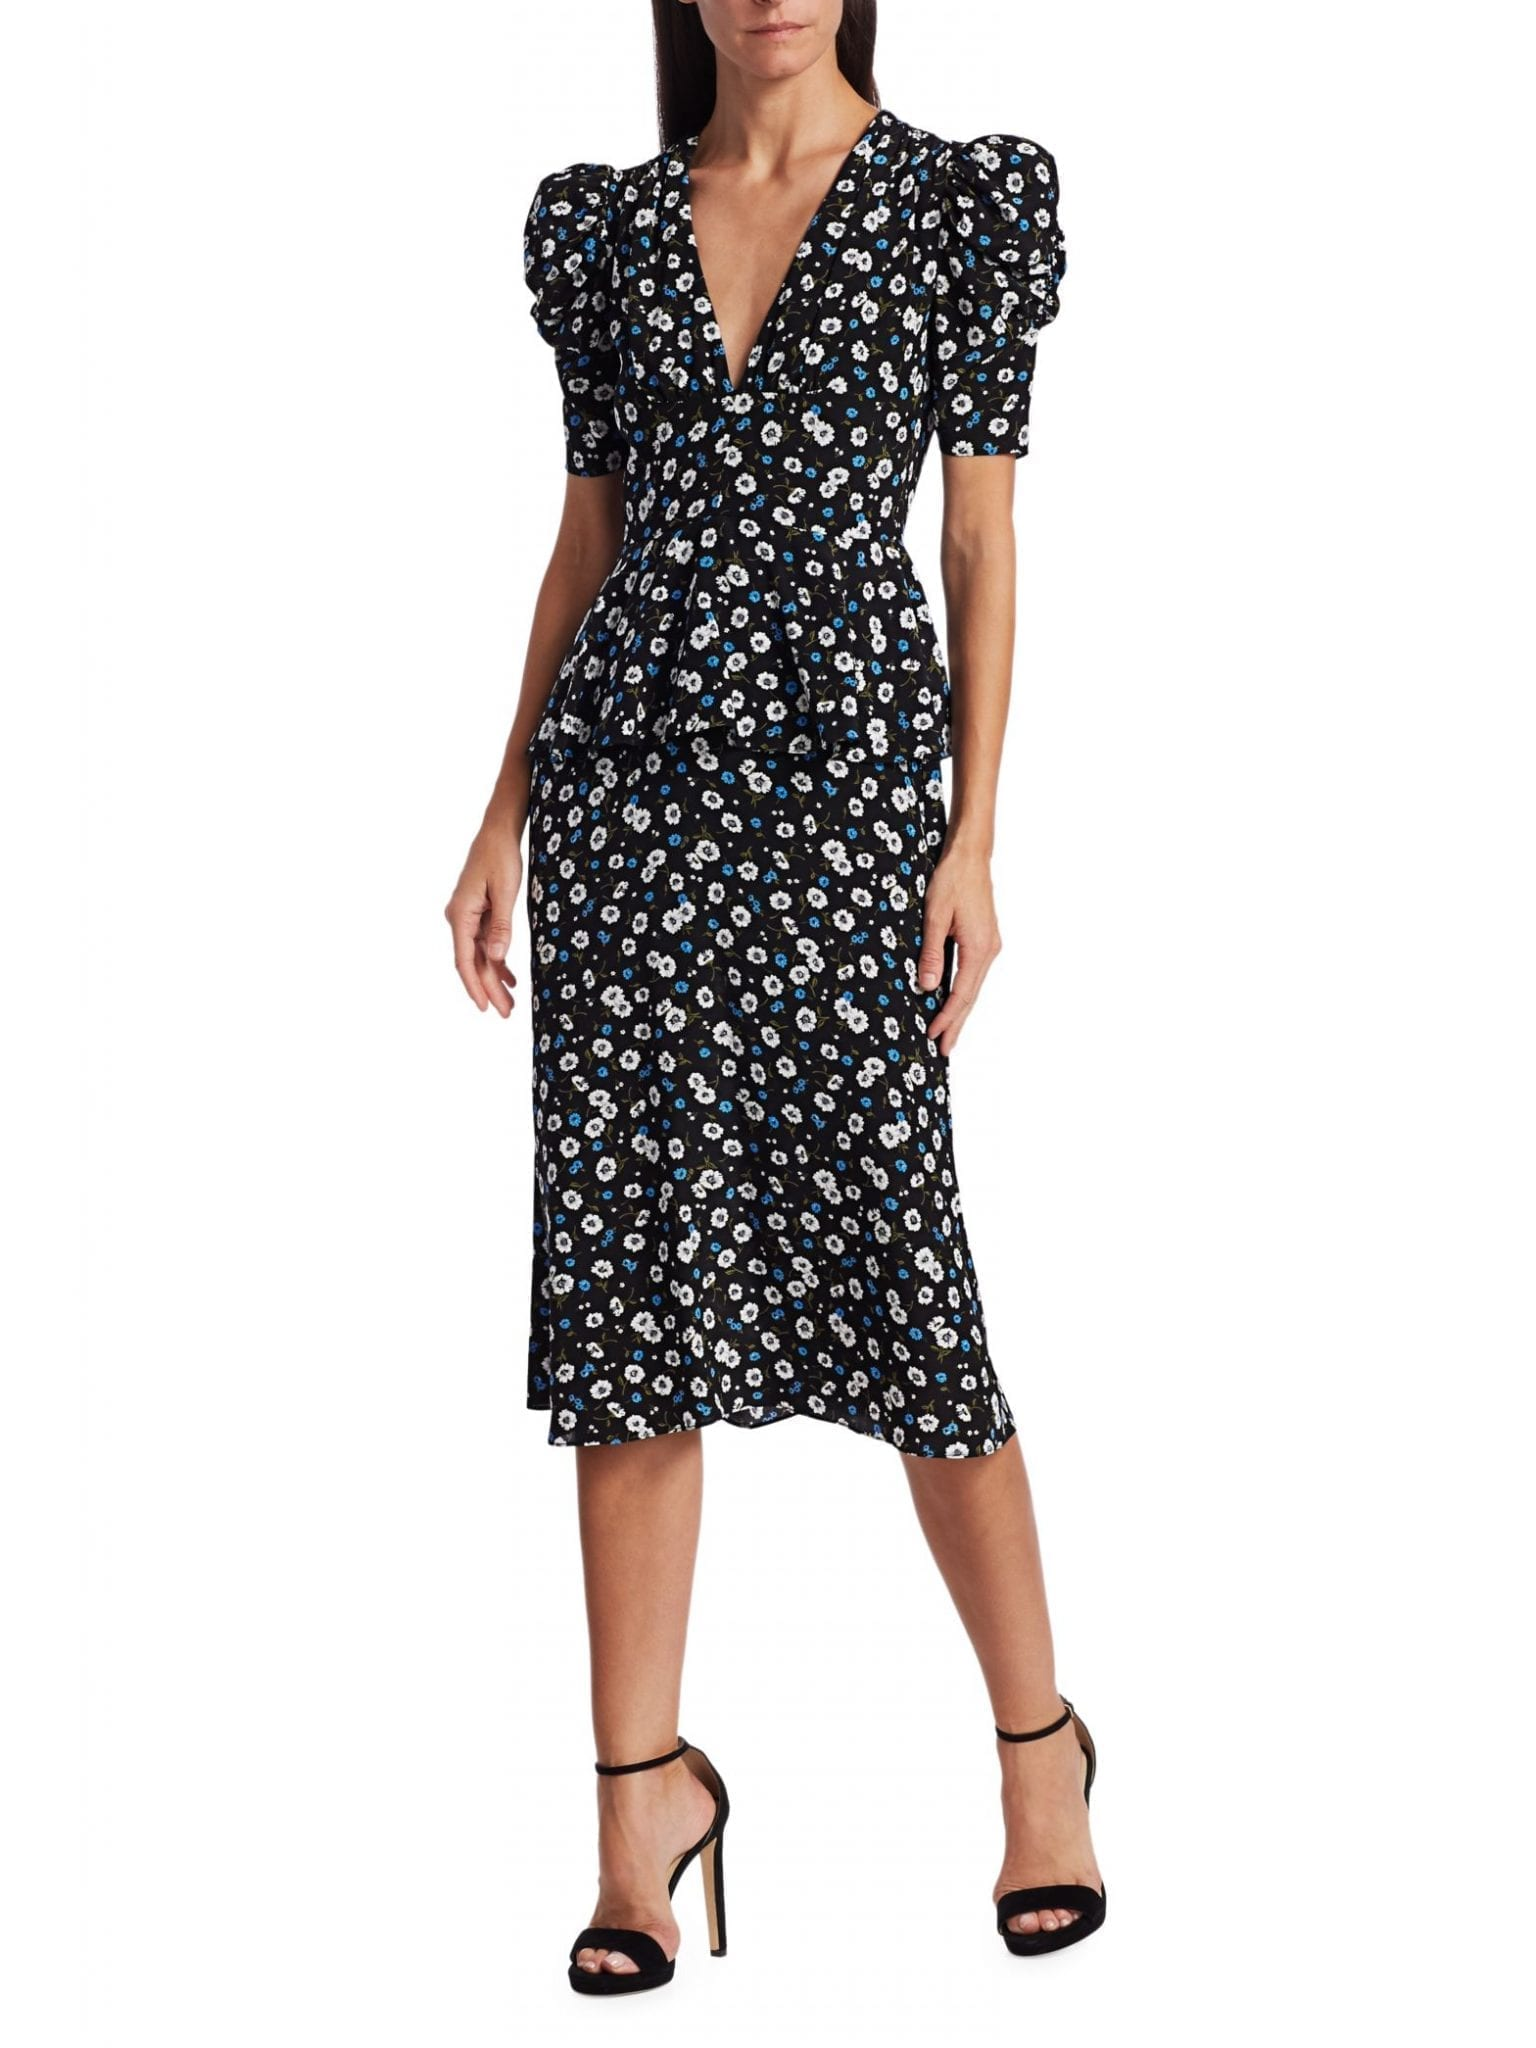 MICHAEL KORS COLLECTION Ruffle-Trimmed Floral Silk Dress